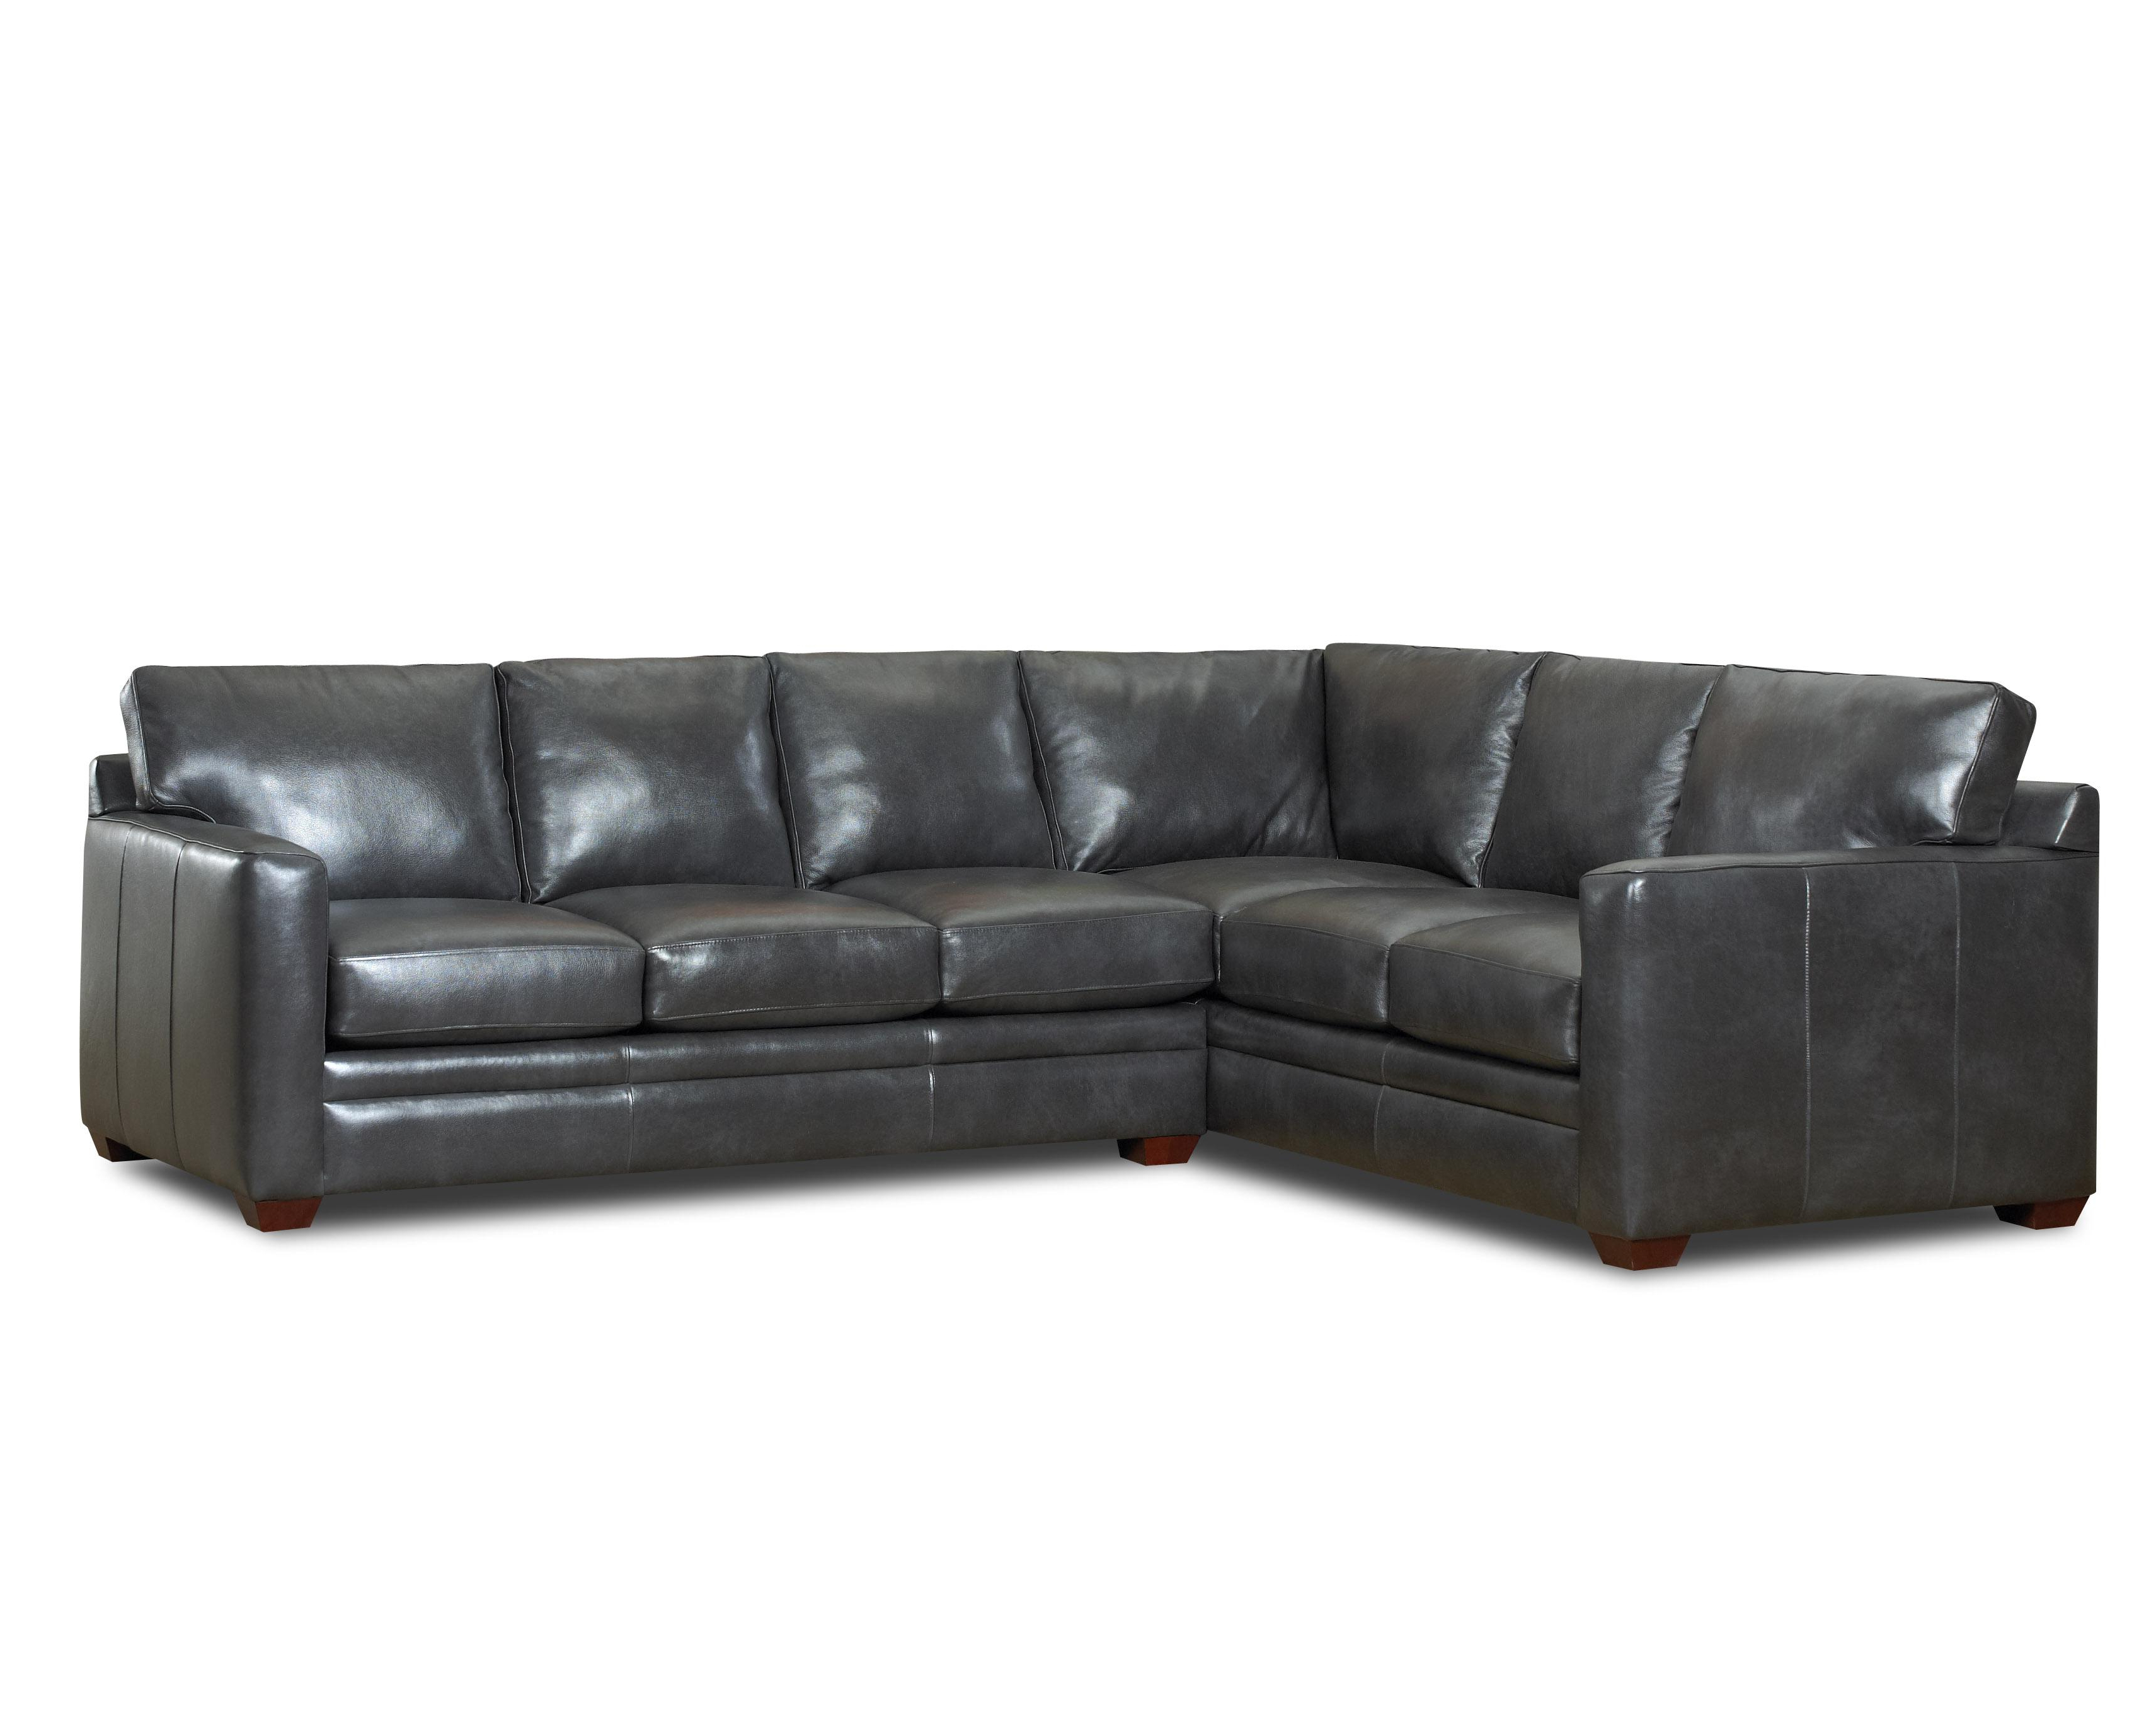 2019 Declan 3 Piece Power Reclining Sectionals With Left Facing Console Loveseat Regarding Unique Klaussner Leather Sectional Sofa – Sofas (View 16 of 20)